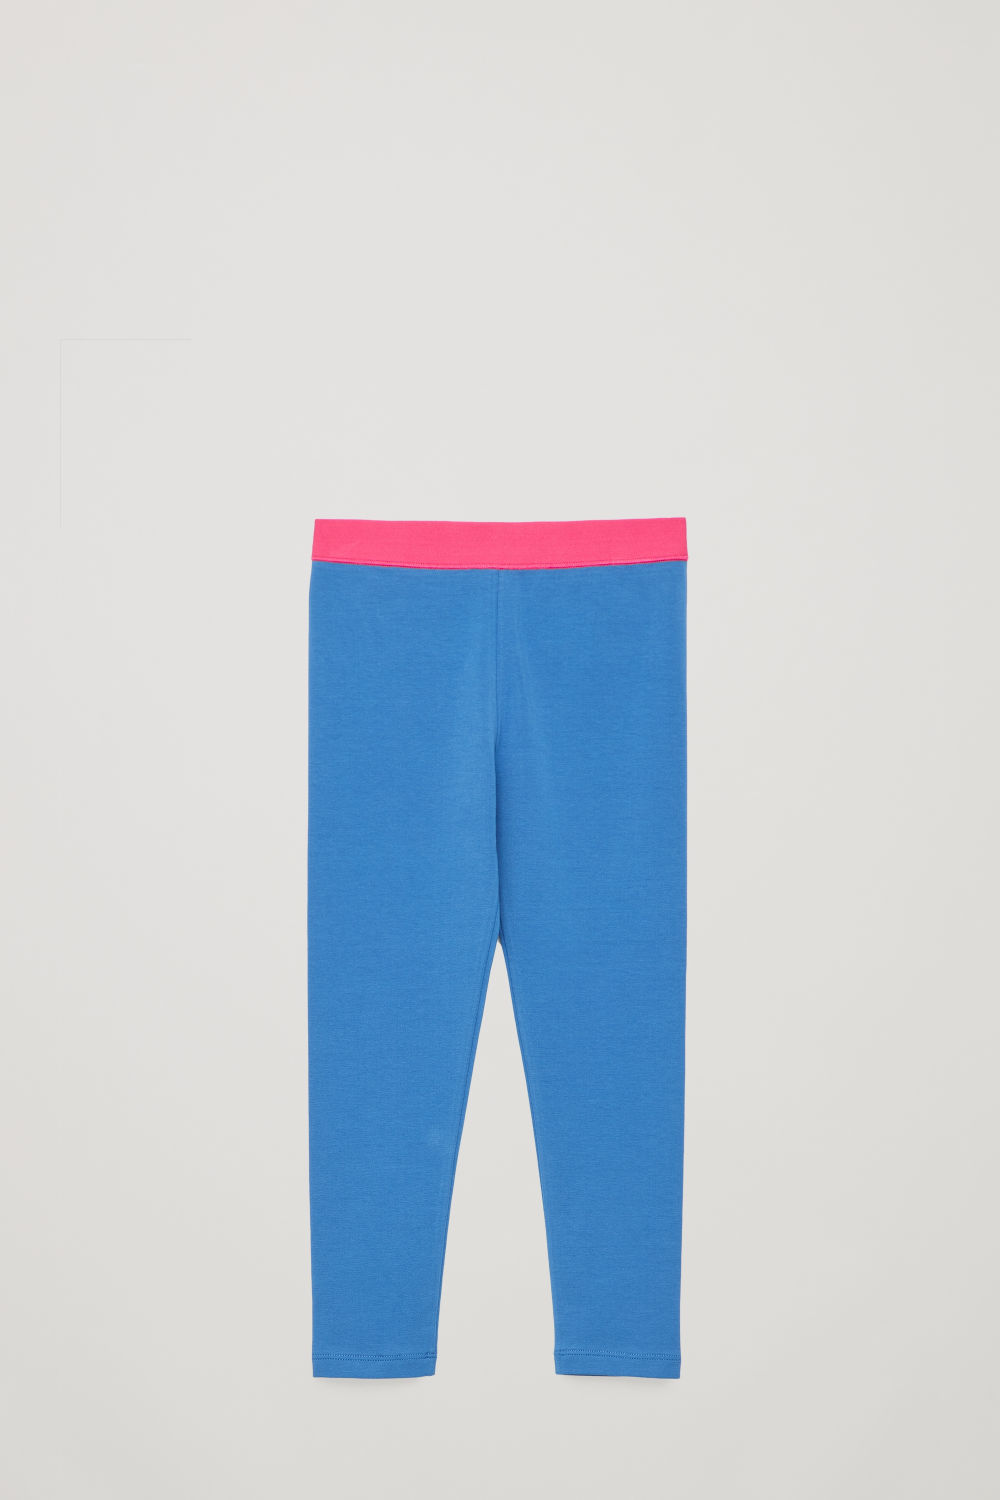 코스 보이즈 레깅스 COS COTTON JERSEY LEGGINGS,Light blue \/ pink